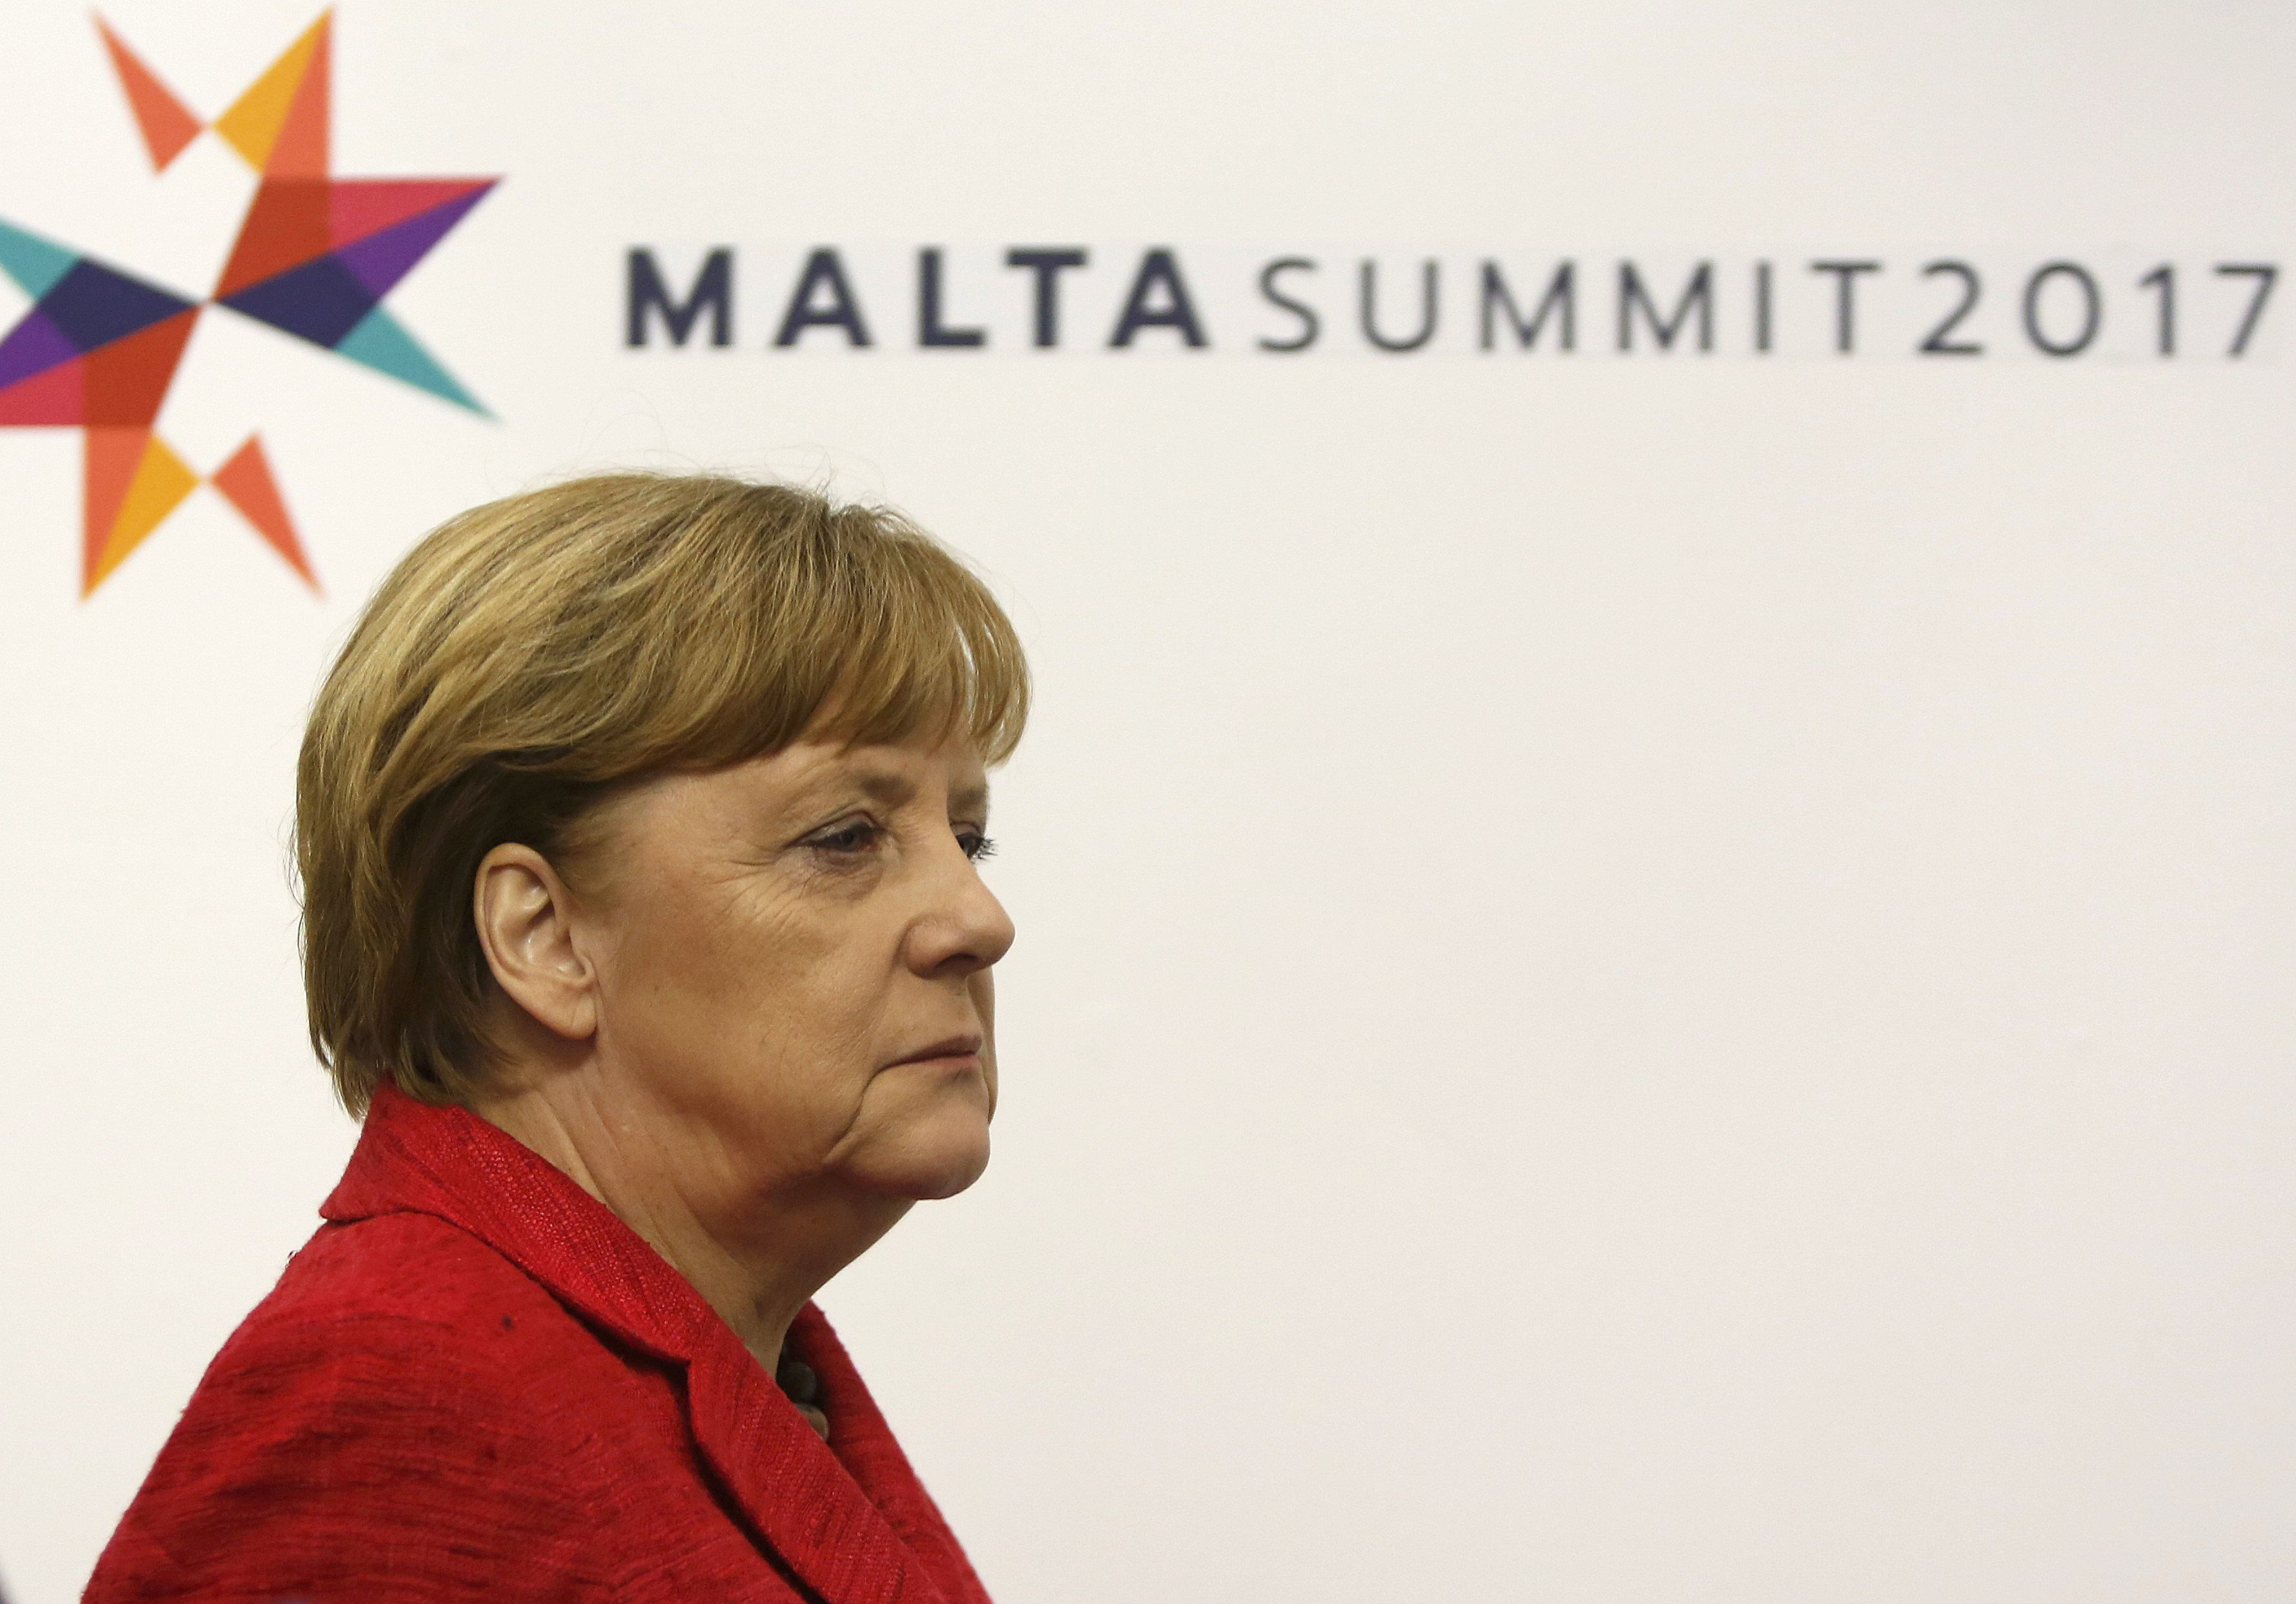 Facing new challenger, Merkel rallies troublesome Bavarian ally